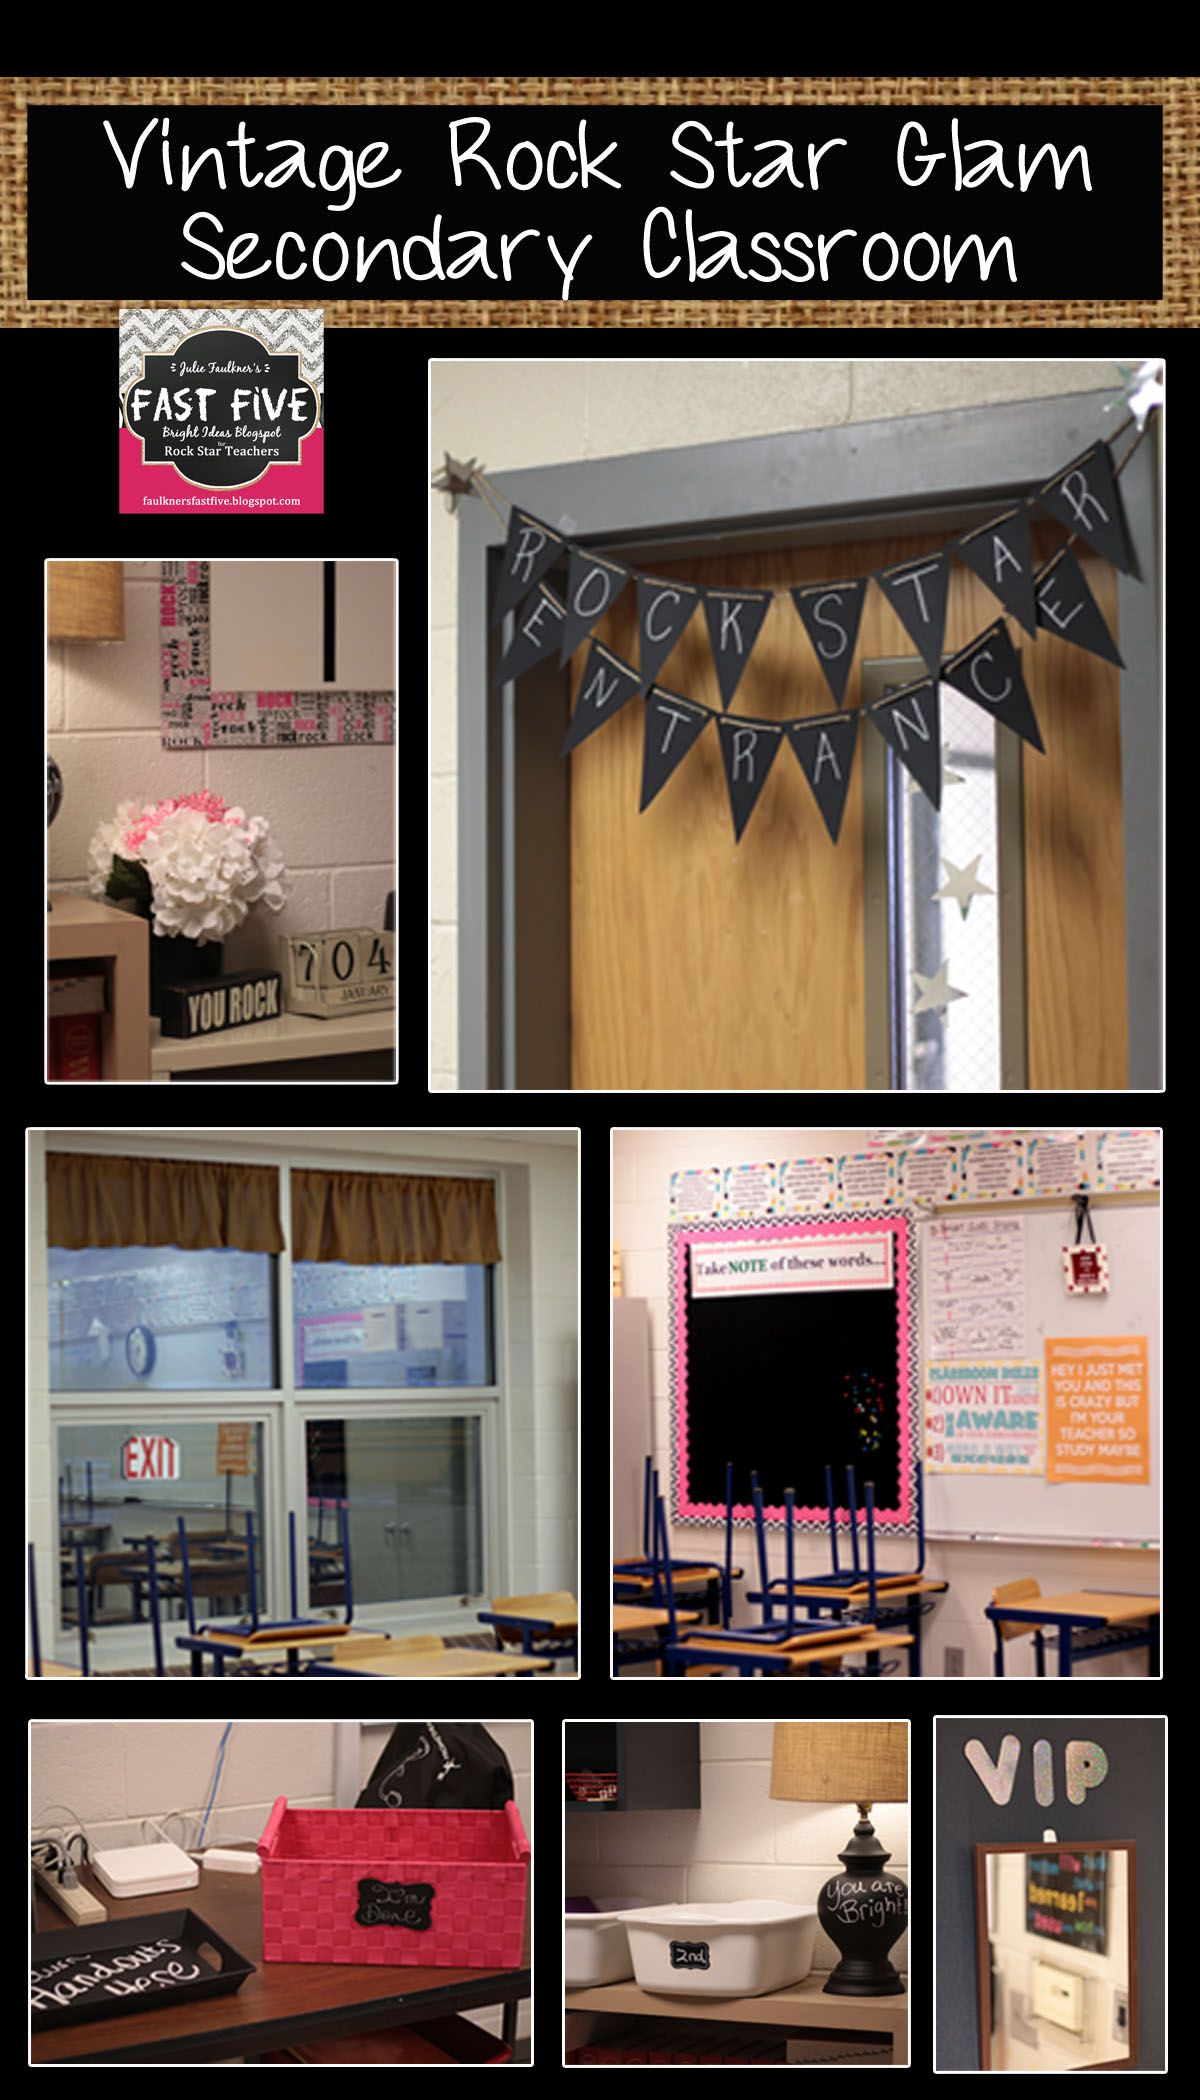 Vintage Rock Star Glam Secondary Classroom Decor for Back to